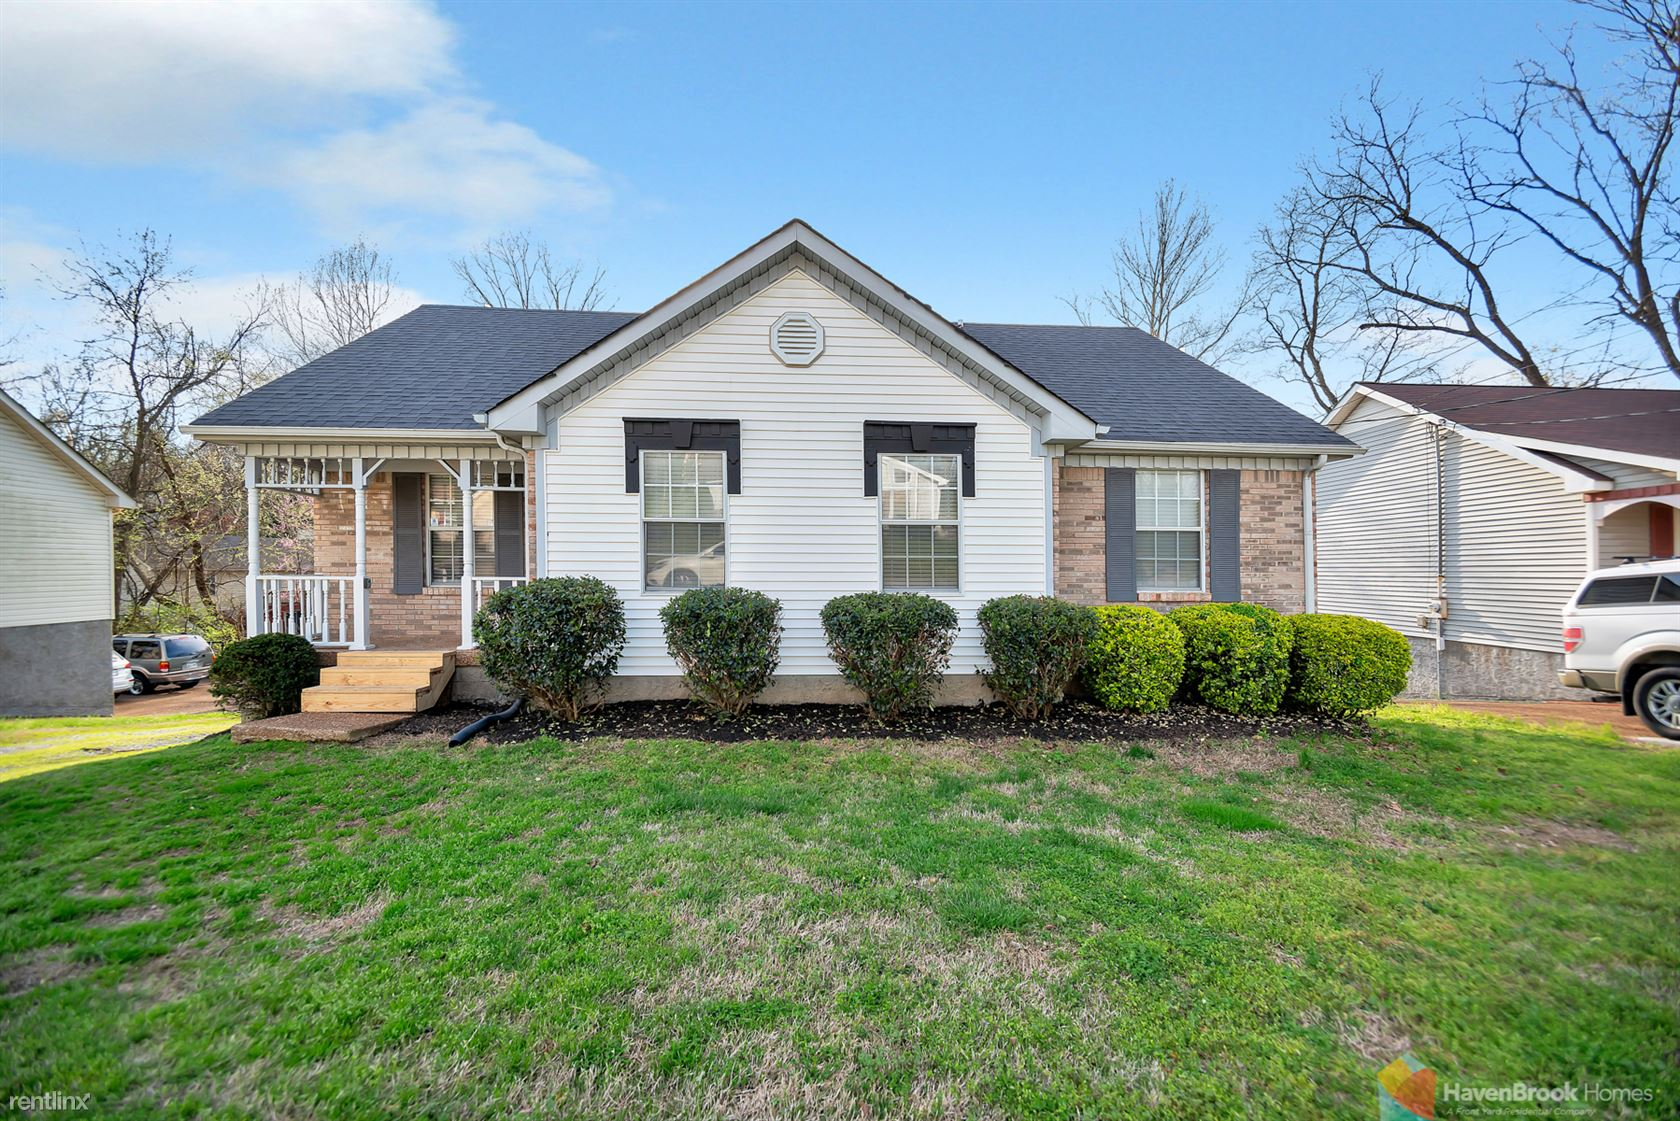 609 Cedarhill Ct, Antioch, TN - $1,899 USD/ month